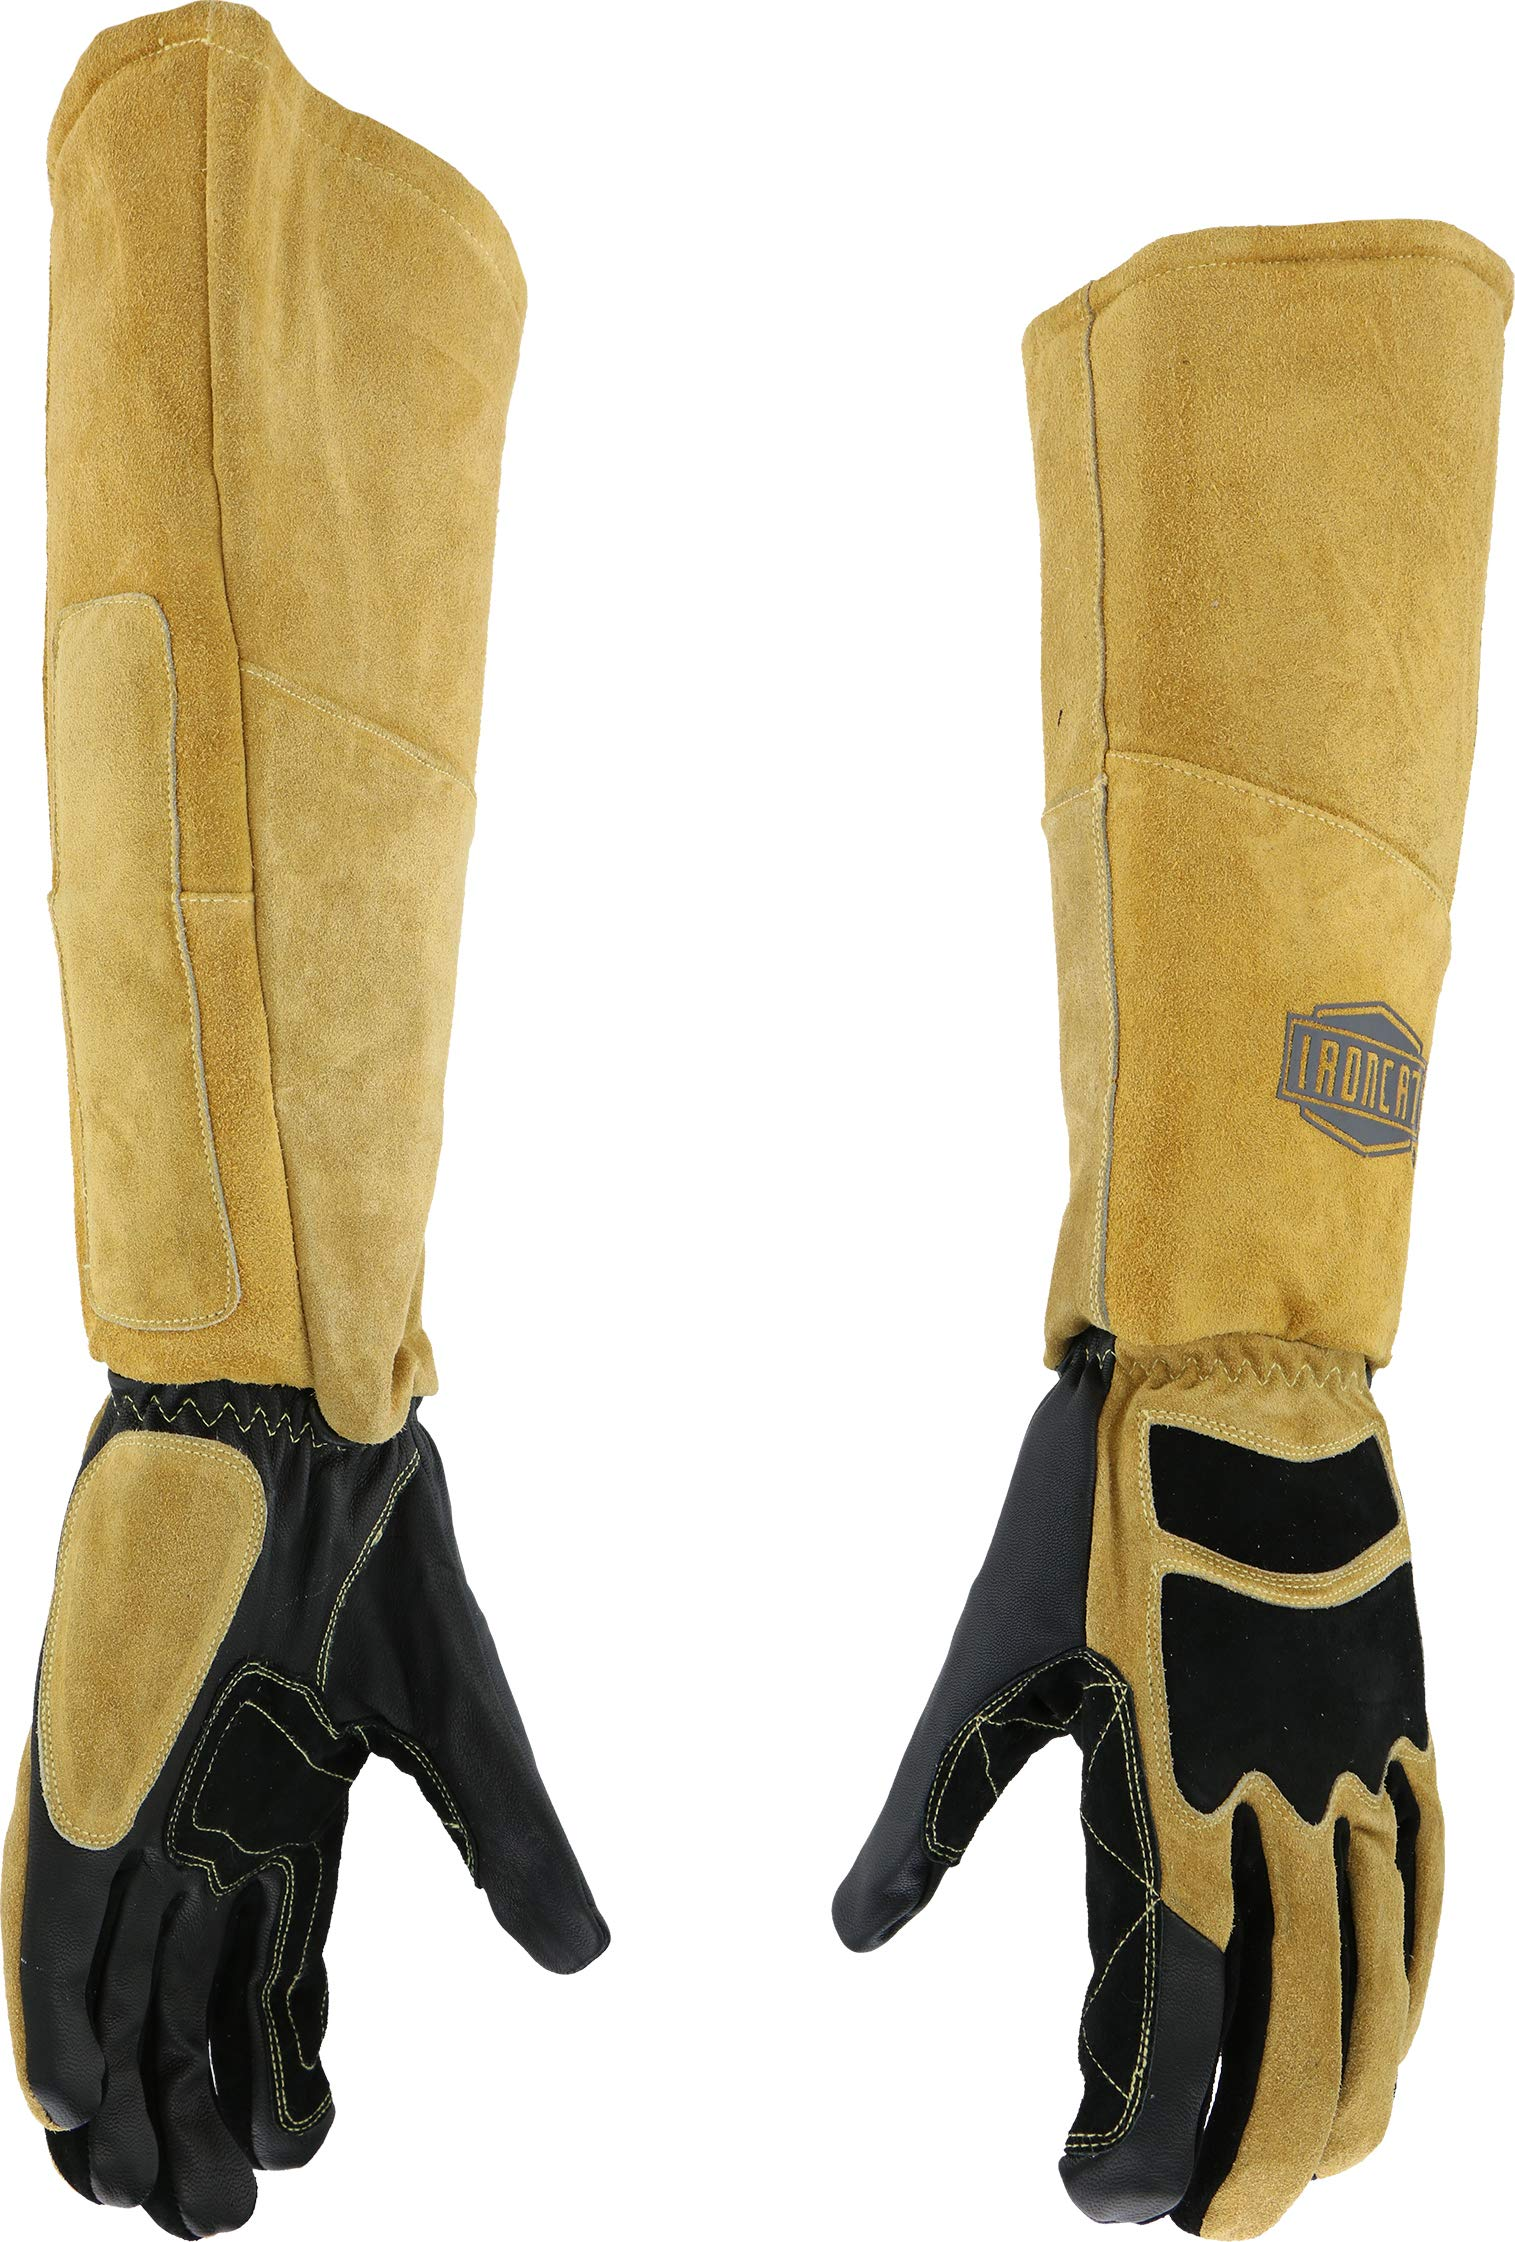 West Chester IRONCAT 9070 Premium Grain Goatskin and Split Cowhide Leather Stick Welding Gloves: XX-Large, 1 Pair